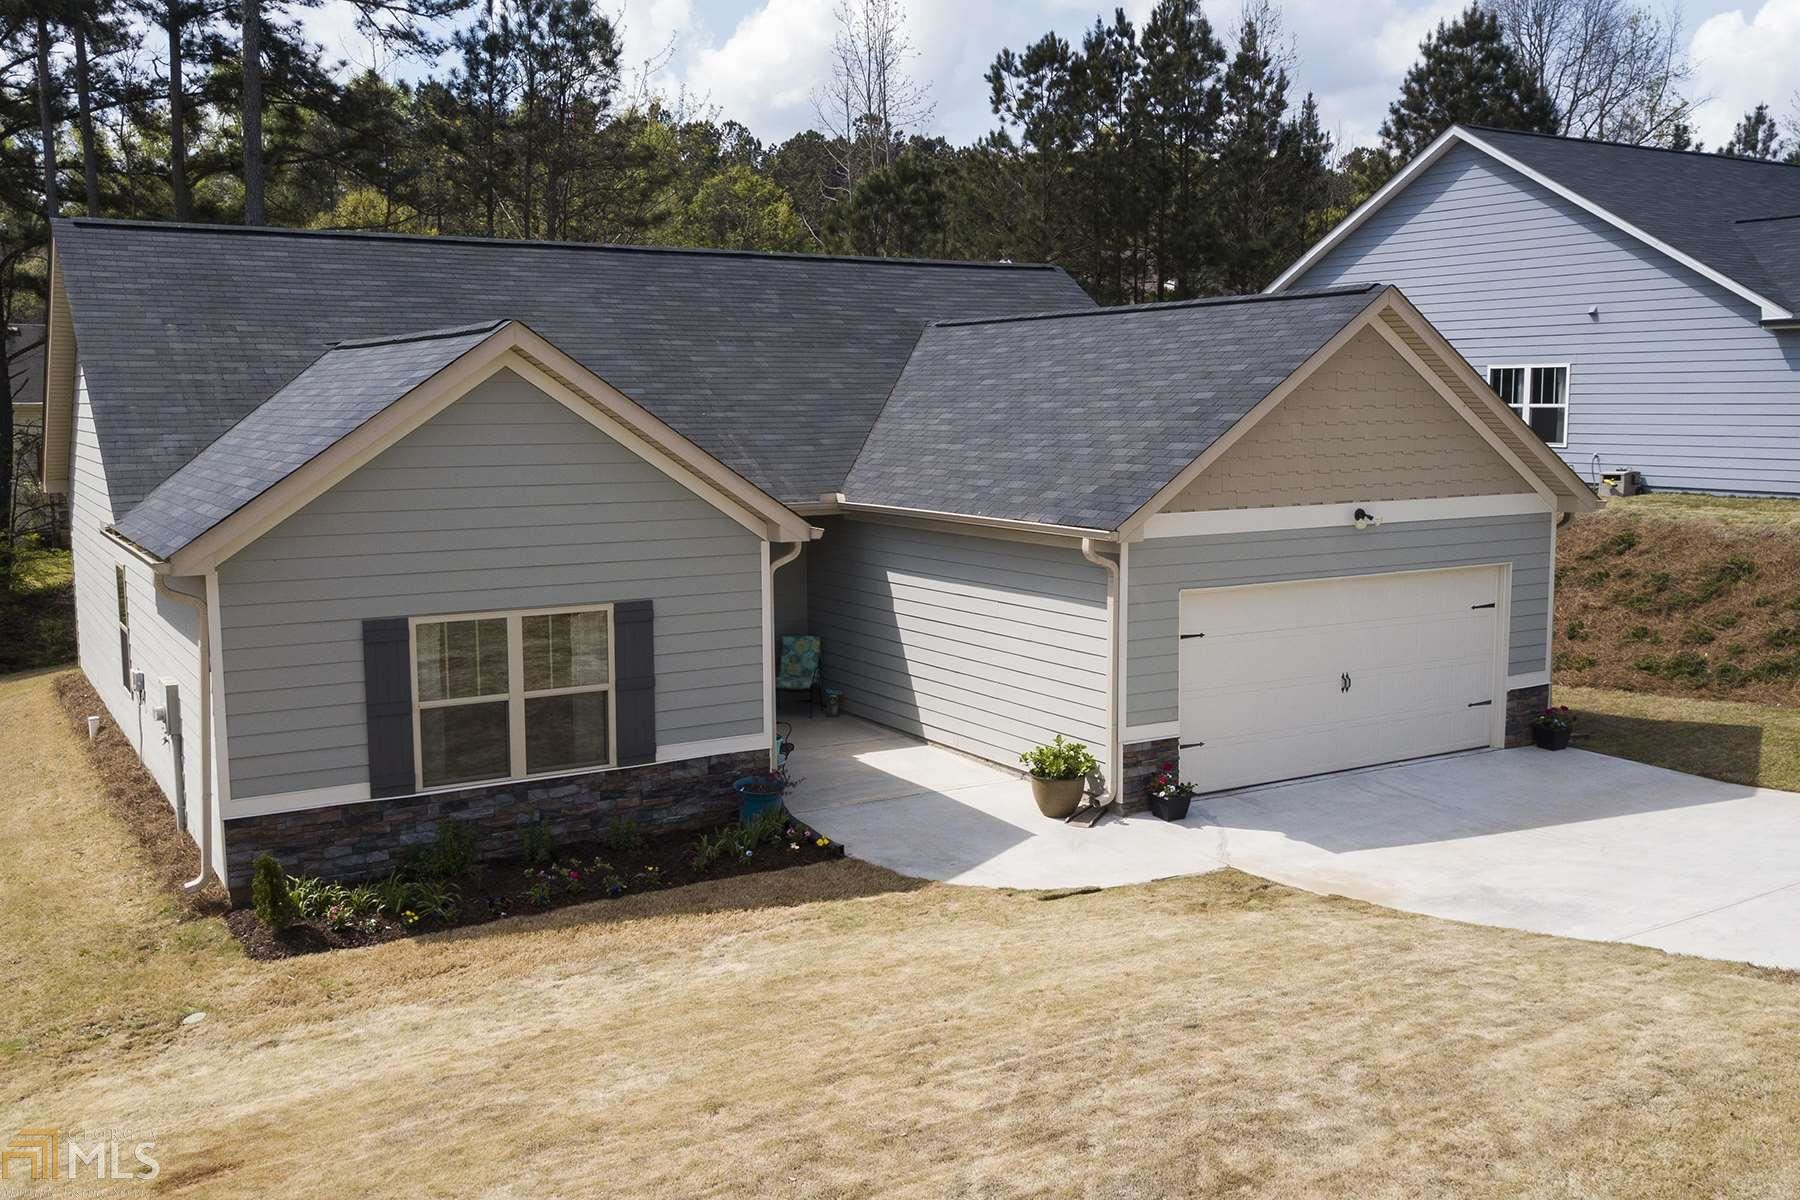 543 Great Oak Pl, Villa Rica, GA 30180 - #: 8957134